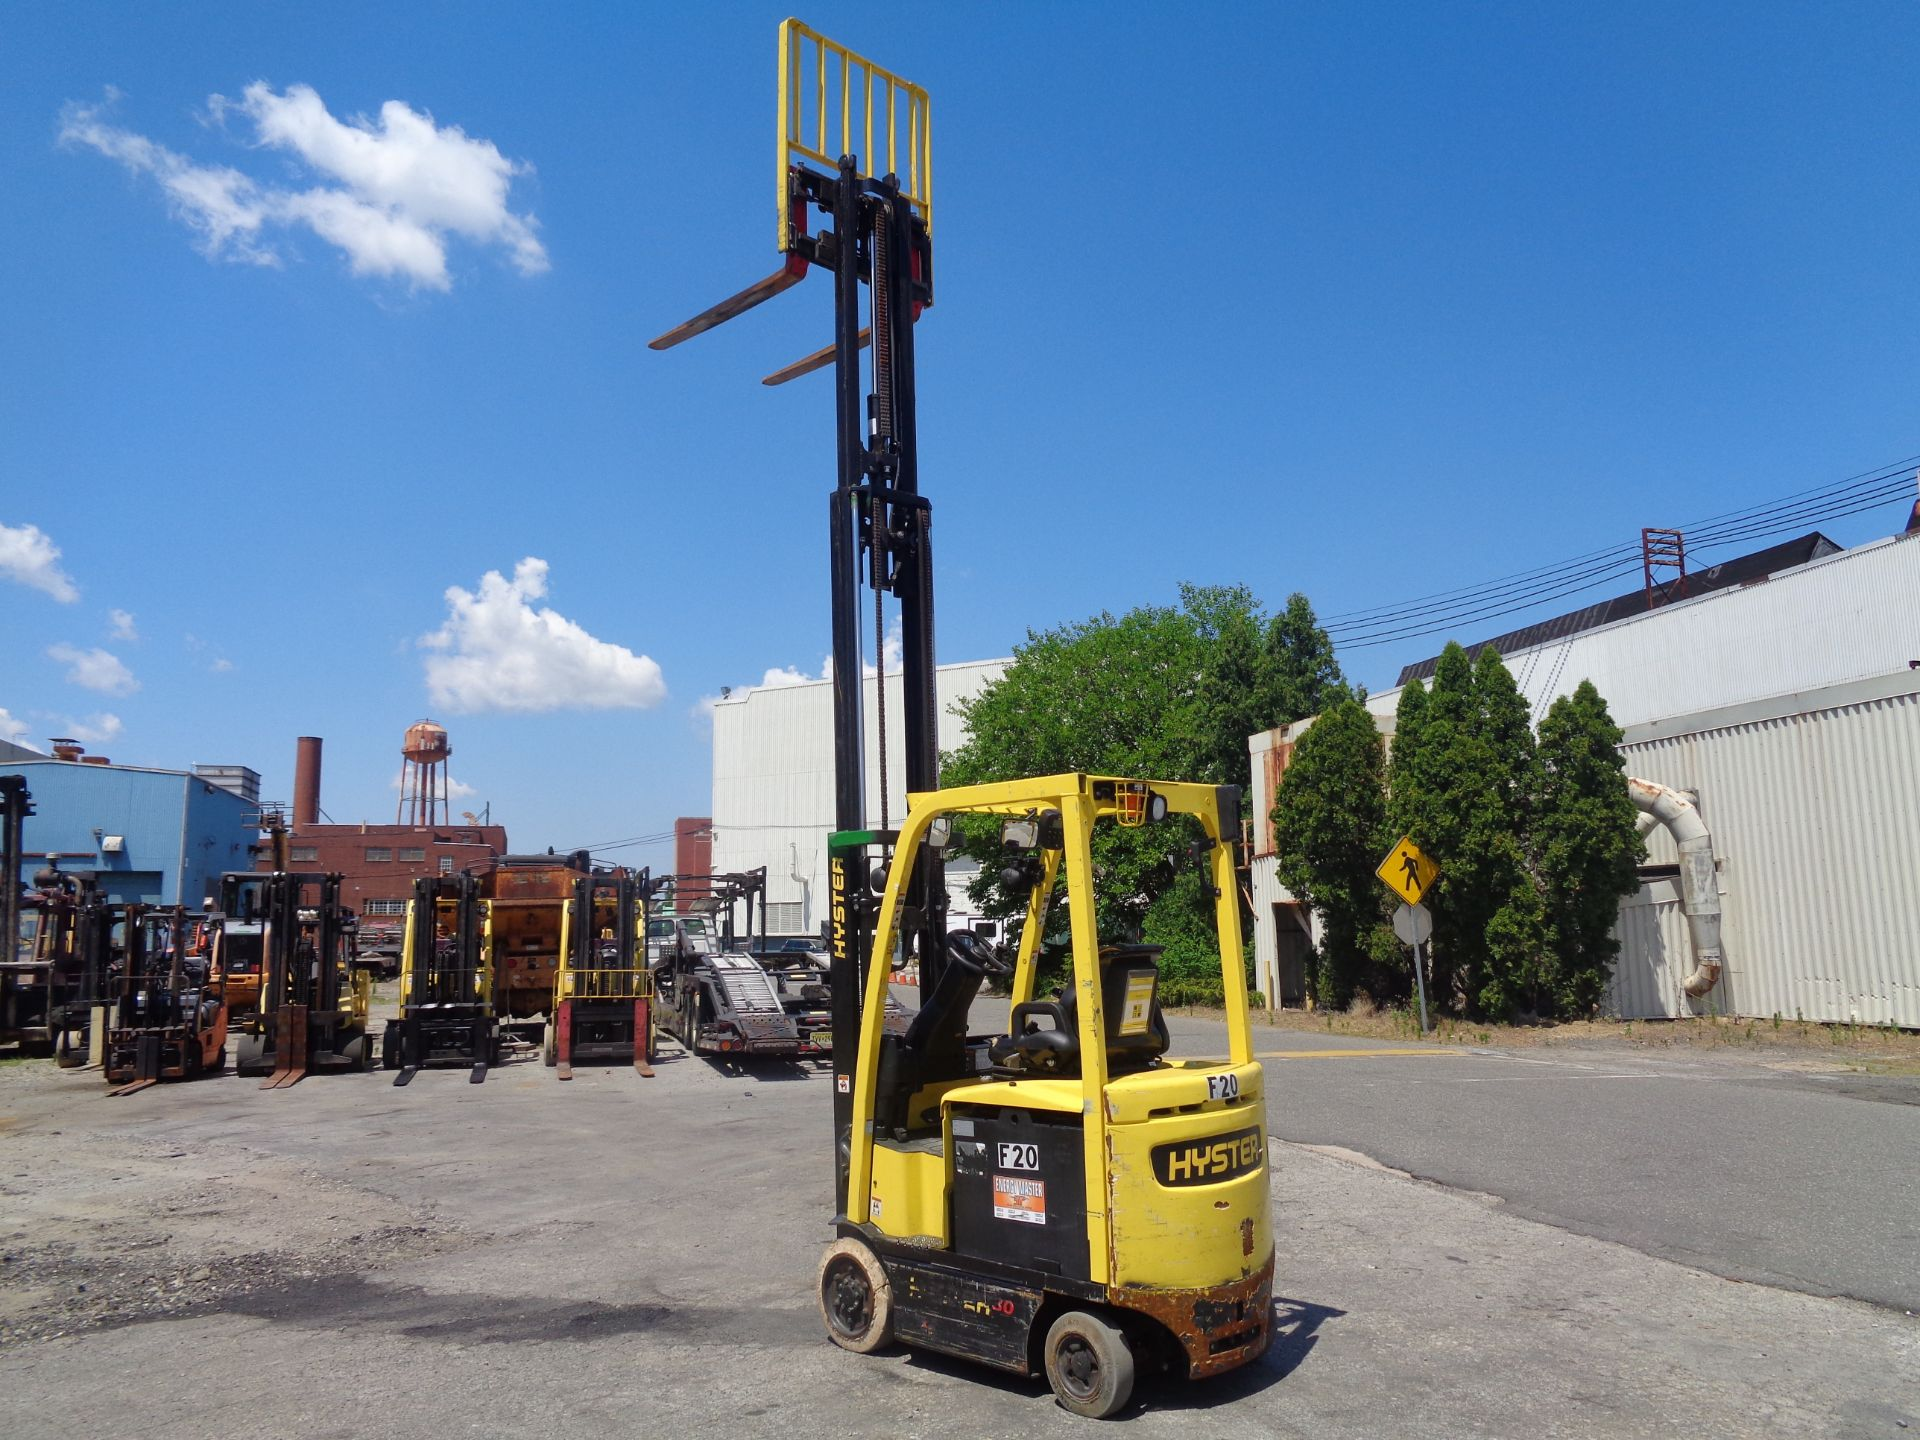 2016 Hyster E30XN 3,000lb Forklift - Image 15 of 18